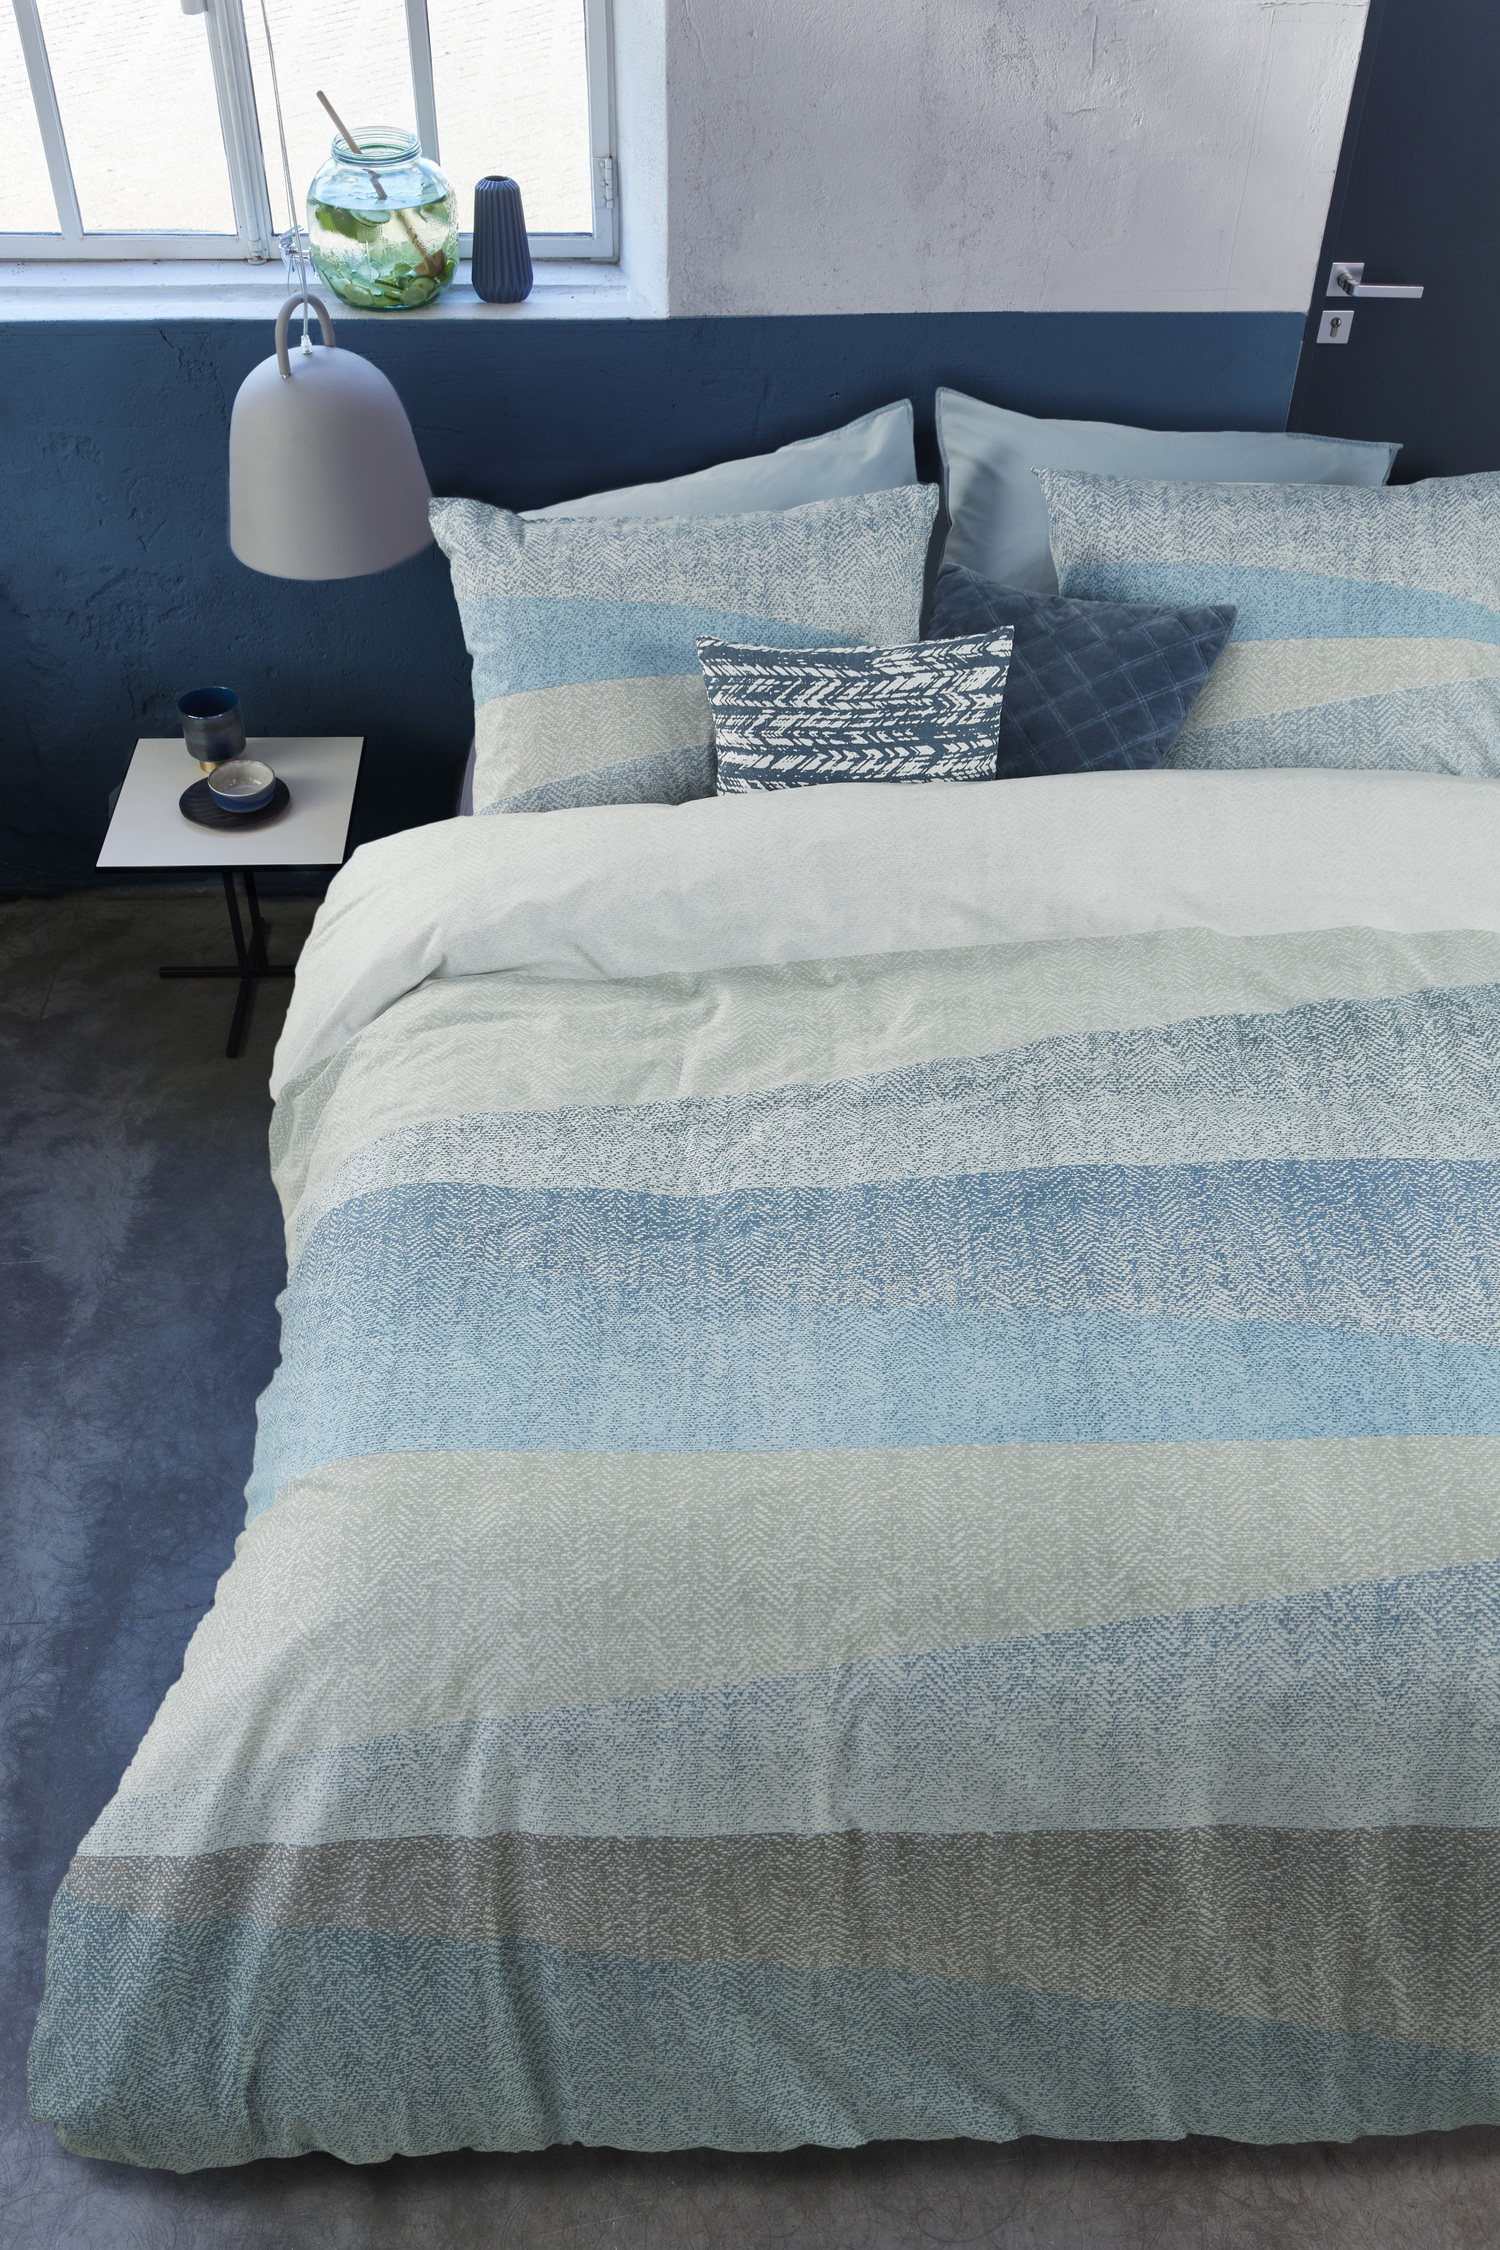 Housse De Couette Paris Flag Blue By Hb Brunelli - Beddingsuperstore.com